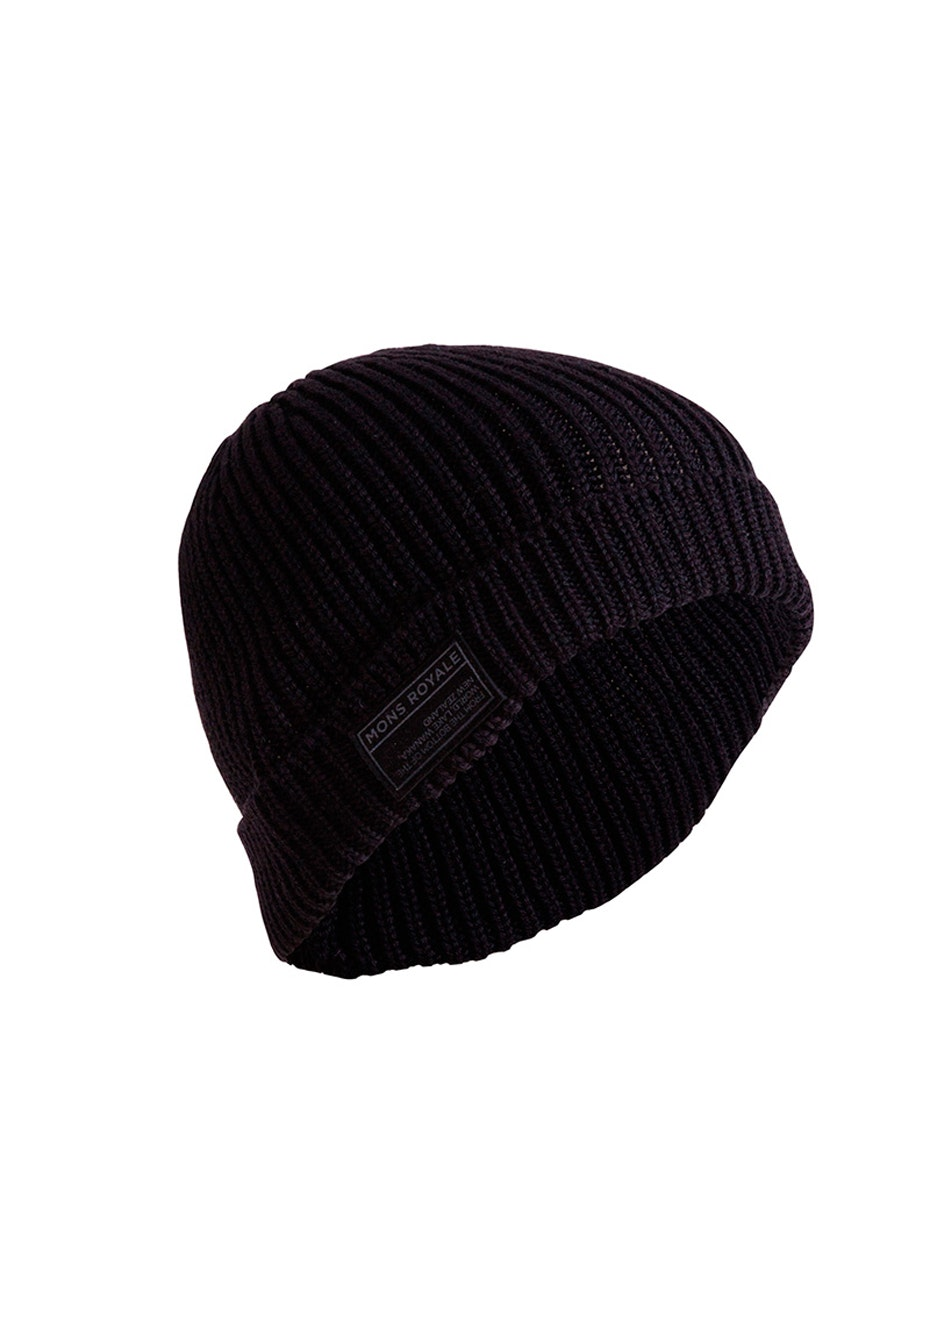 Mons Royale - Fisherman's Beanie - Black